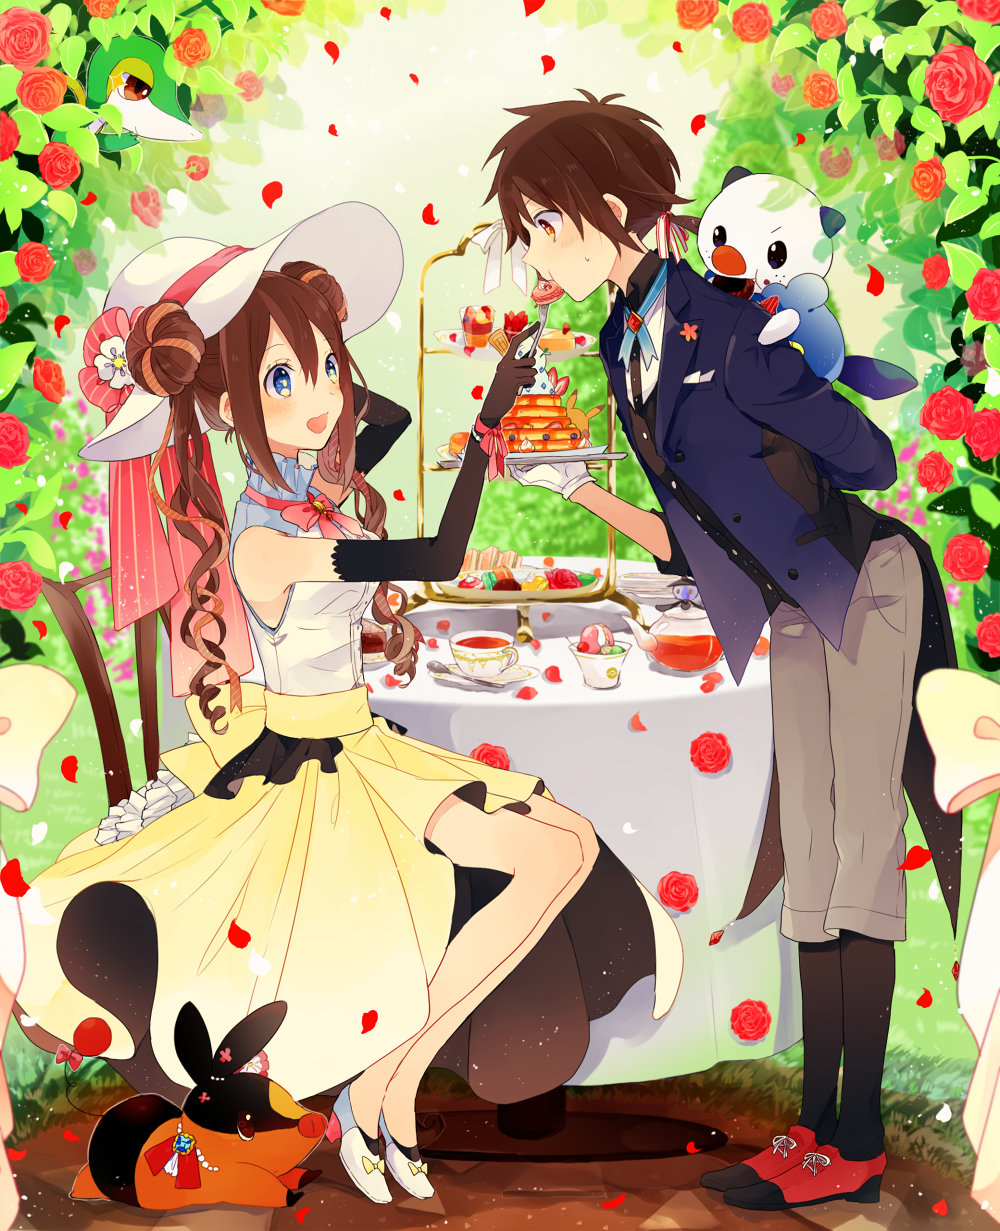 1boy 1girl alternate_costume bare_shoulders blue_eyes blush breasts brown_eyes brown_hair buttons cake chair coat cream cup day double_bun eating elbow_gloves eye_contact feeding flower food food_in_mouth food_on_face frilled_shirt_collar frills garden gloves grass hair_bun hair_ribbon half-closed_eyes hat hat_flower high_heels highres holding holding_plate jewelry kitchenset kyouhei_(pokemon) lampent leaf leaning_forward long_hair long_skirt looking_at_another lying medium_breasts mei_(pokemon) neck_ribbon on_shoulder open_mouth oshawott outdoors pants petals pikachu plate pokemon pokemon_(game) pokemon_bw2 ribbon rose rose_petals shirt shoes sitting skirt sleeveless sleeveless_shirt smile snivy spoon standing sun_hat table tail tail_ribbon tea teacup tepig tuxedo twintails yellow_skirt